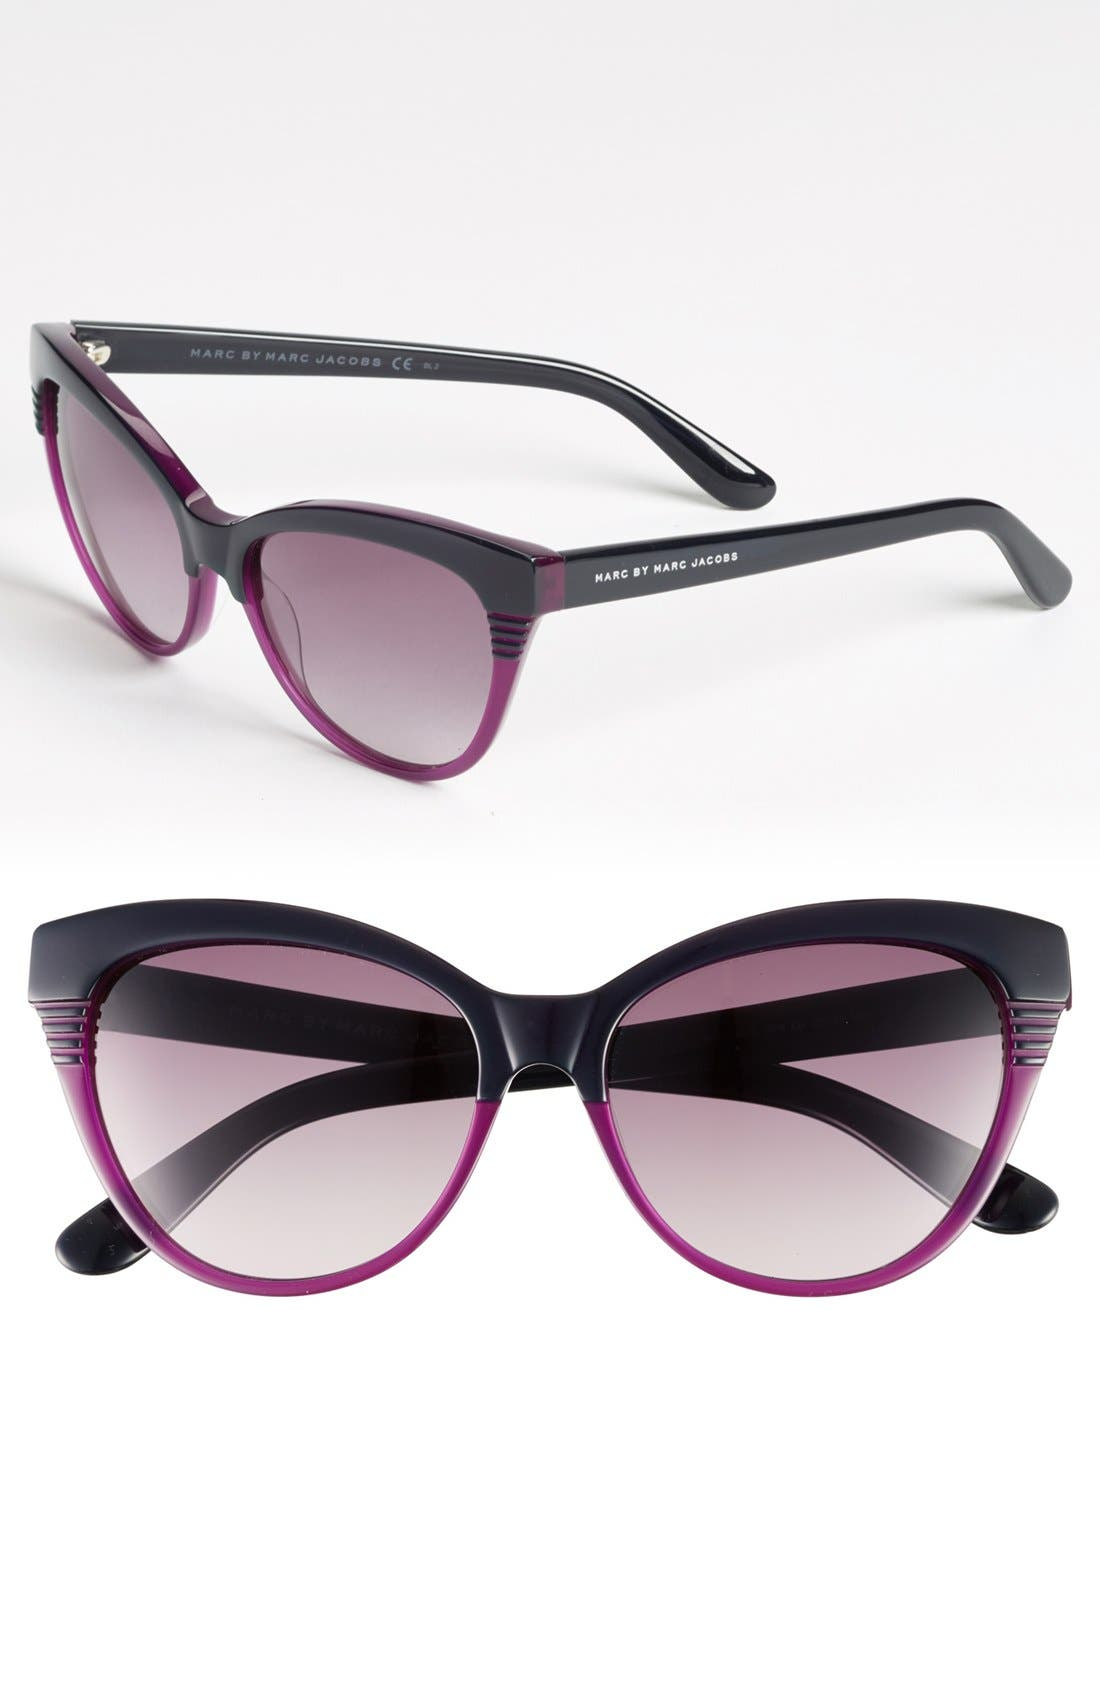 Main Image - MARC BY MARC JACOBS 55mm Cat Eye Sunglasses